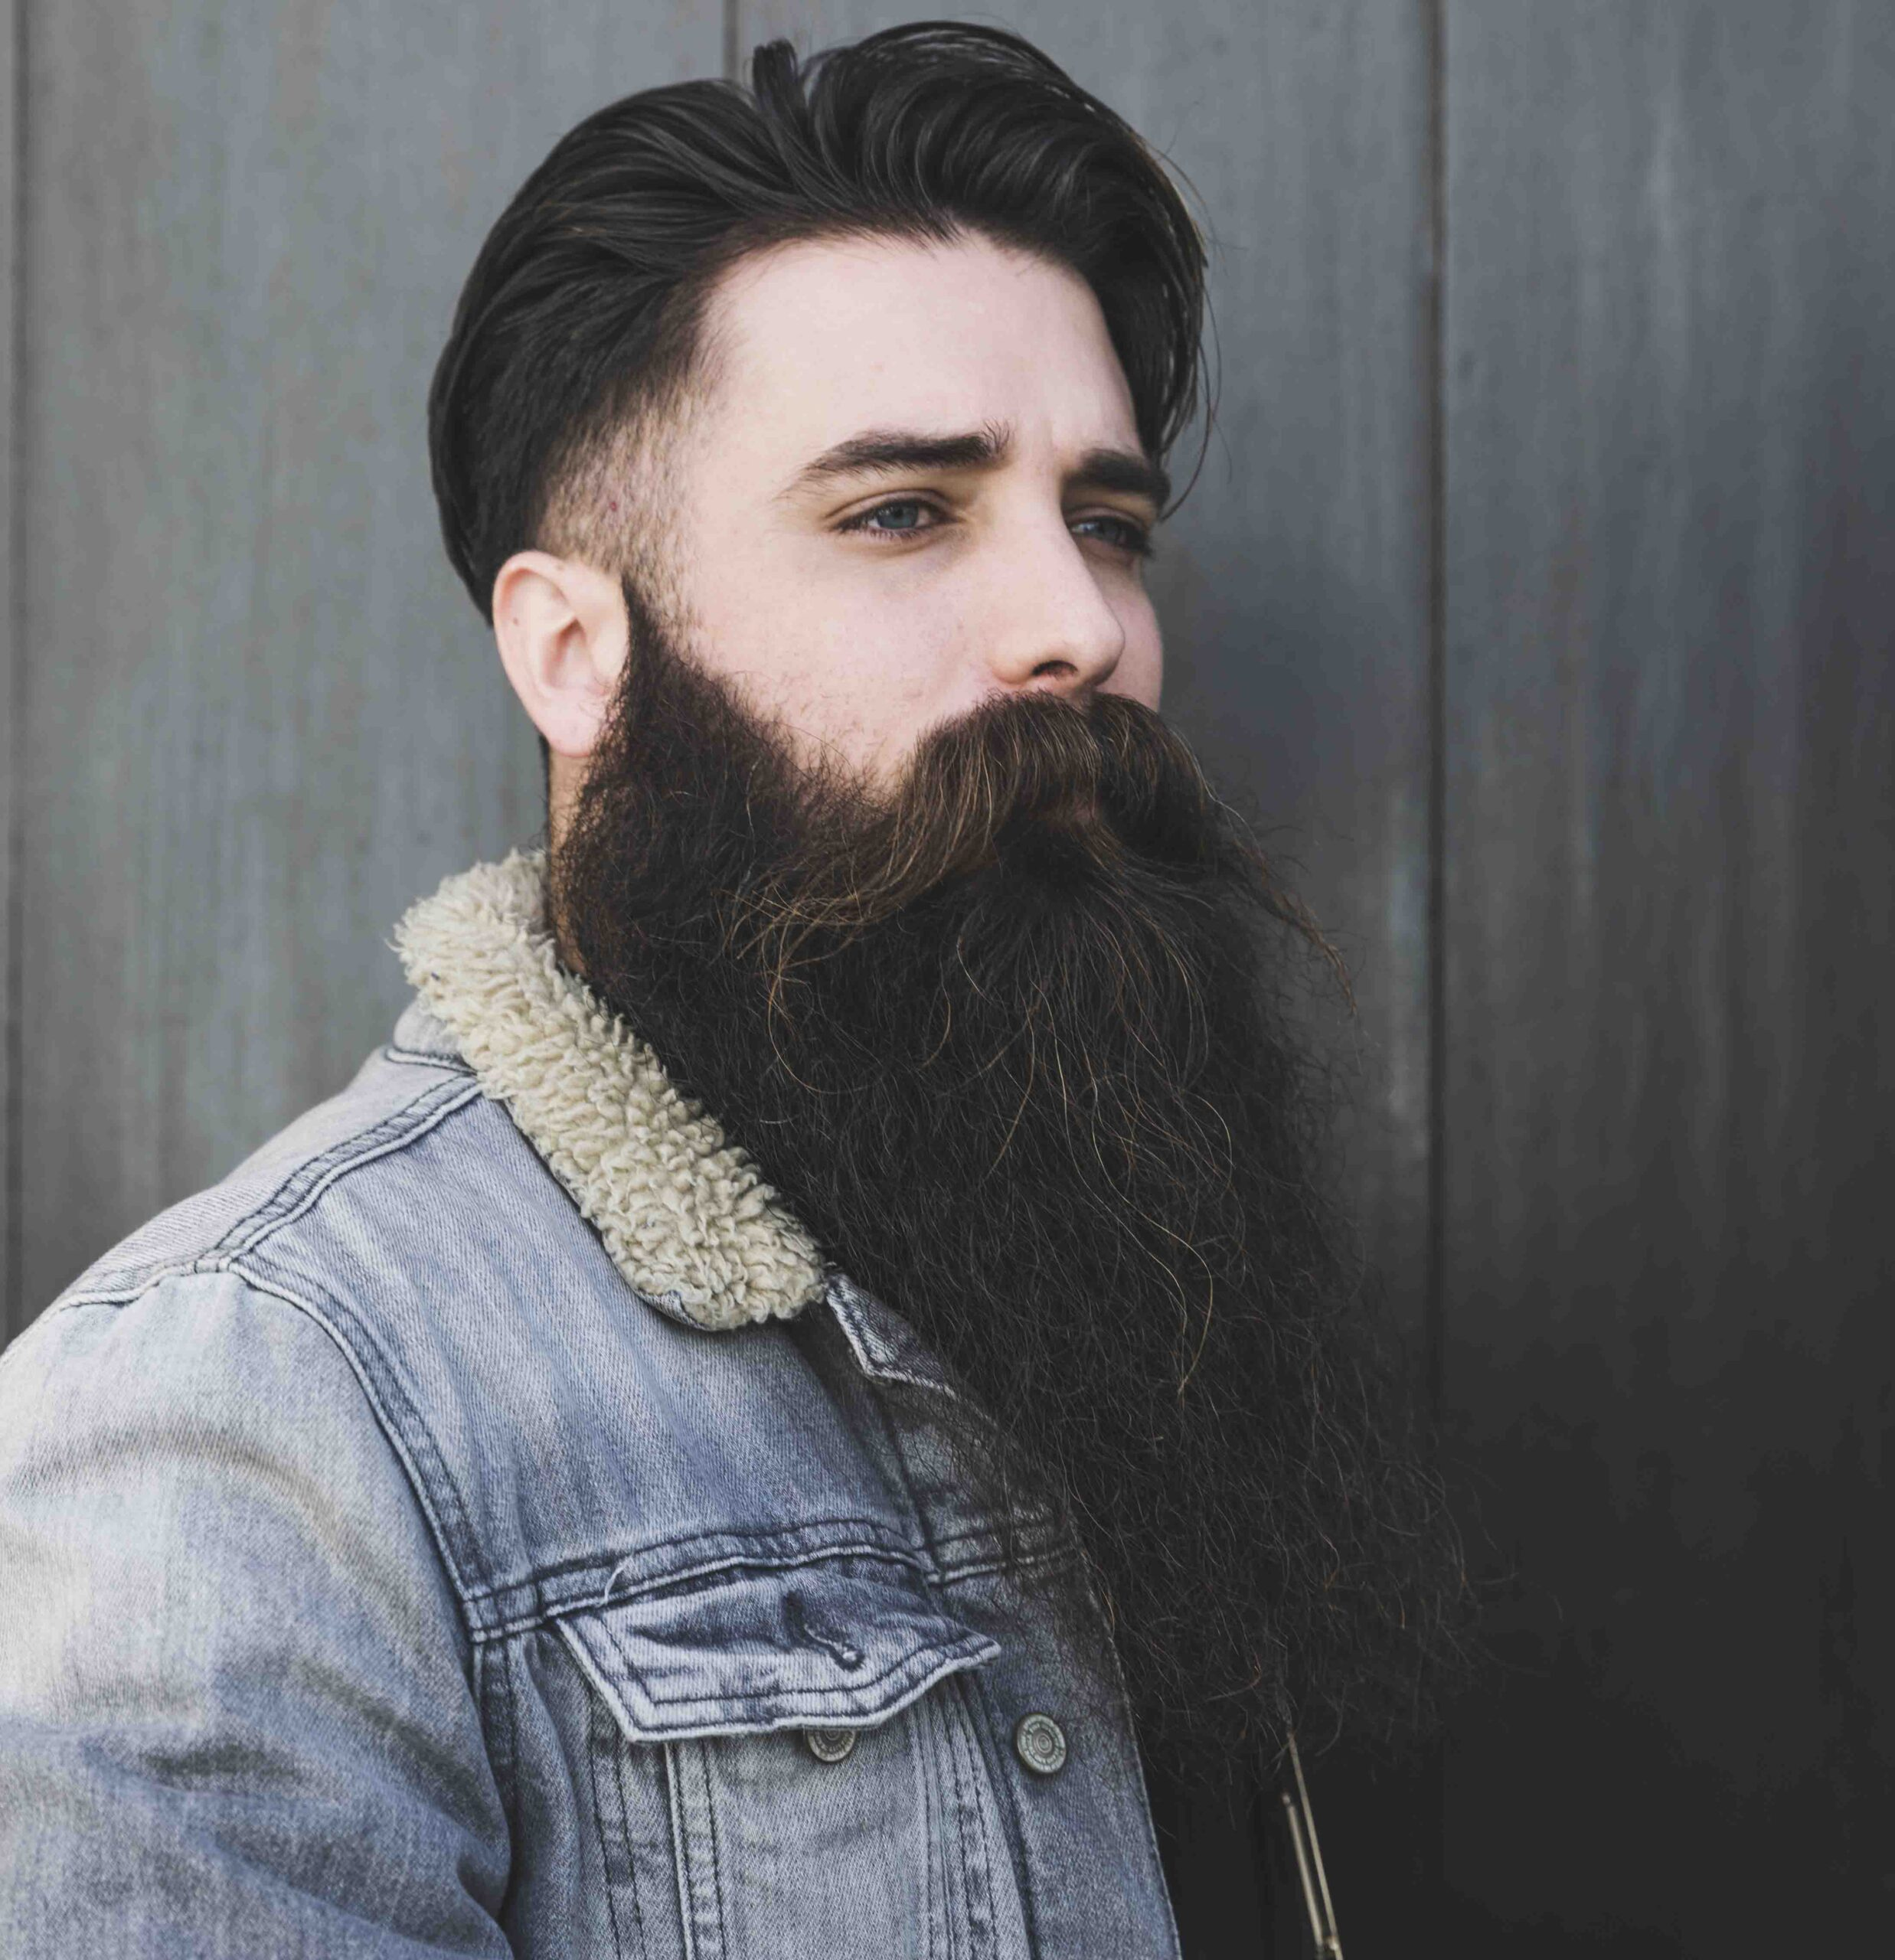 How to take care for a beard